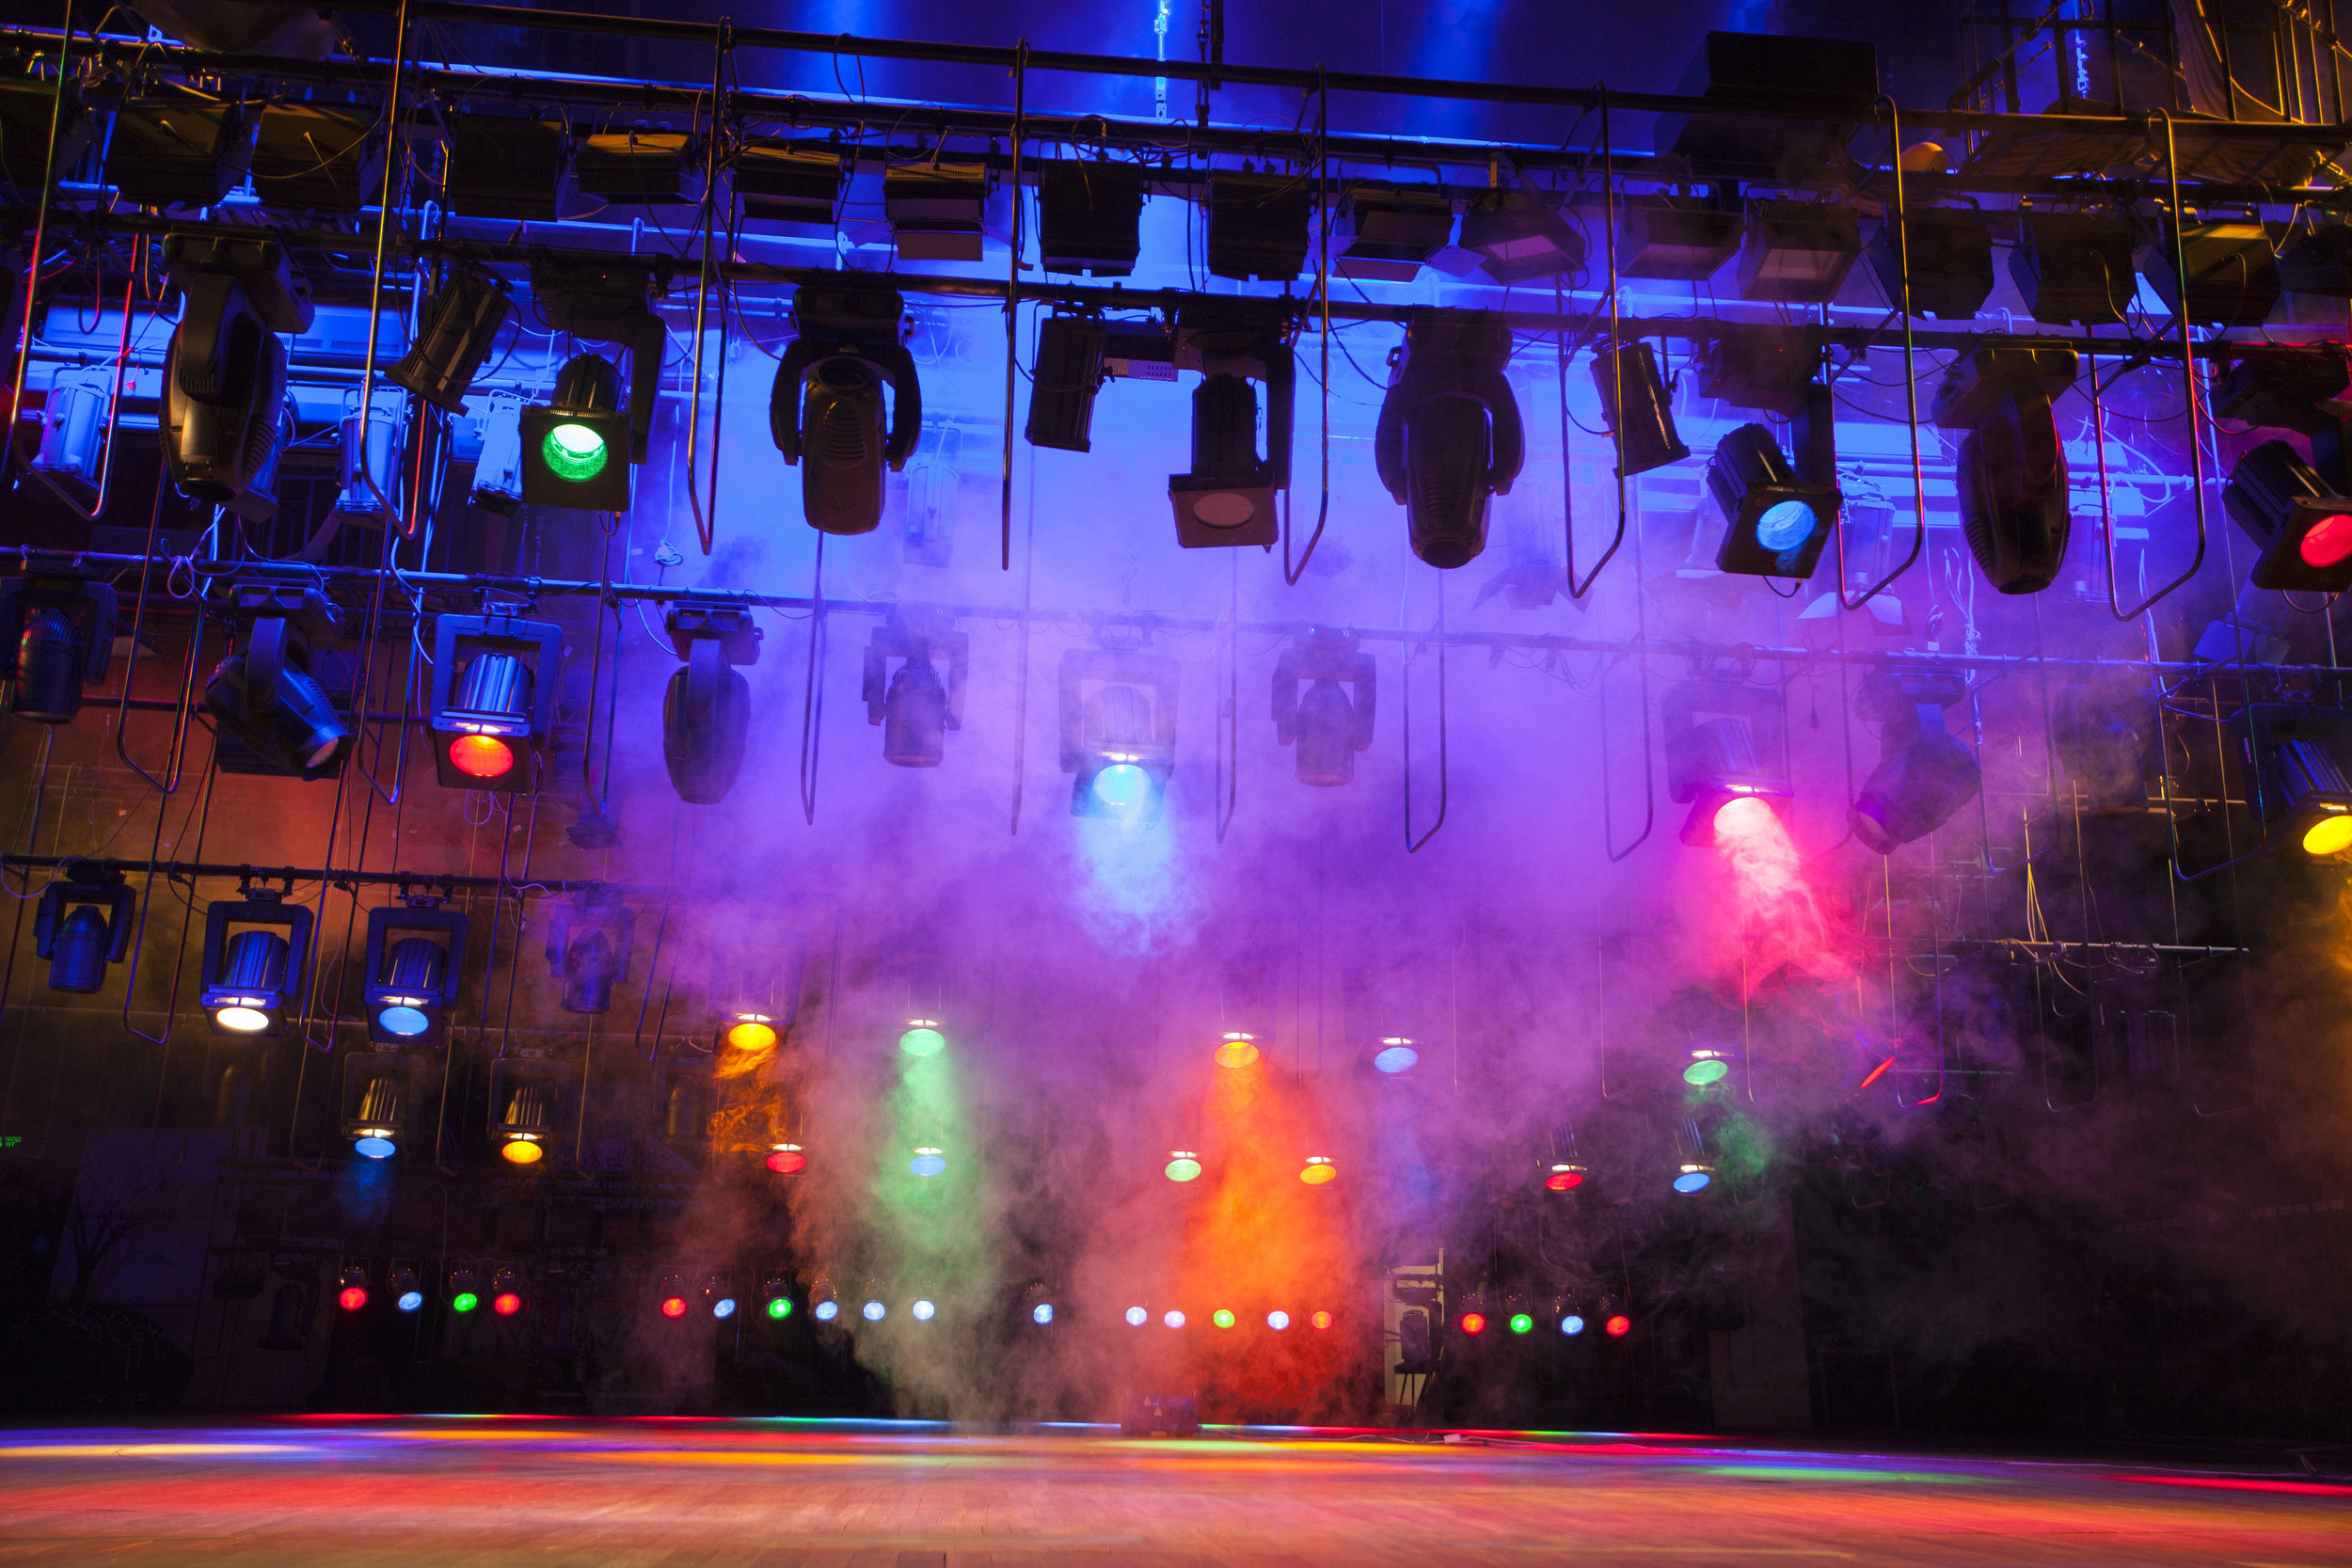 Production Services - We have spent nearly 25 years managing and producing major large scale music festivals and events, from a few hundred to over 80,000 in attendance. In addition to our production and management services.